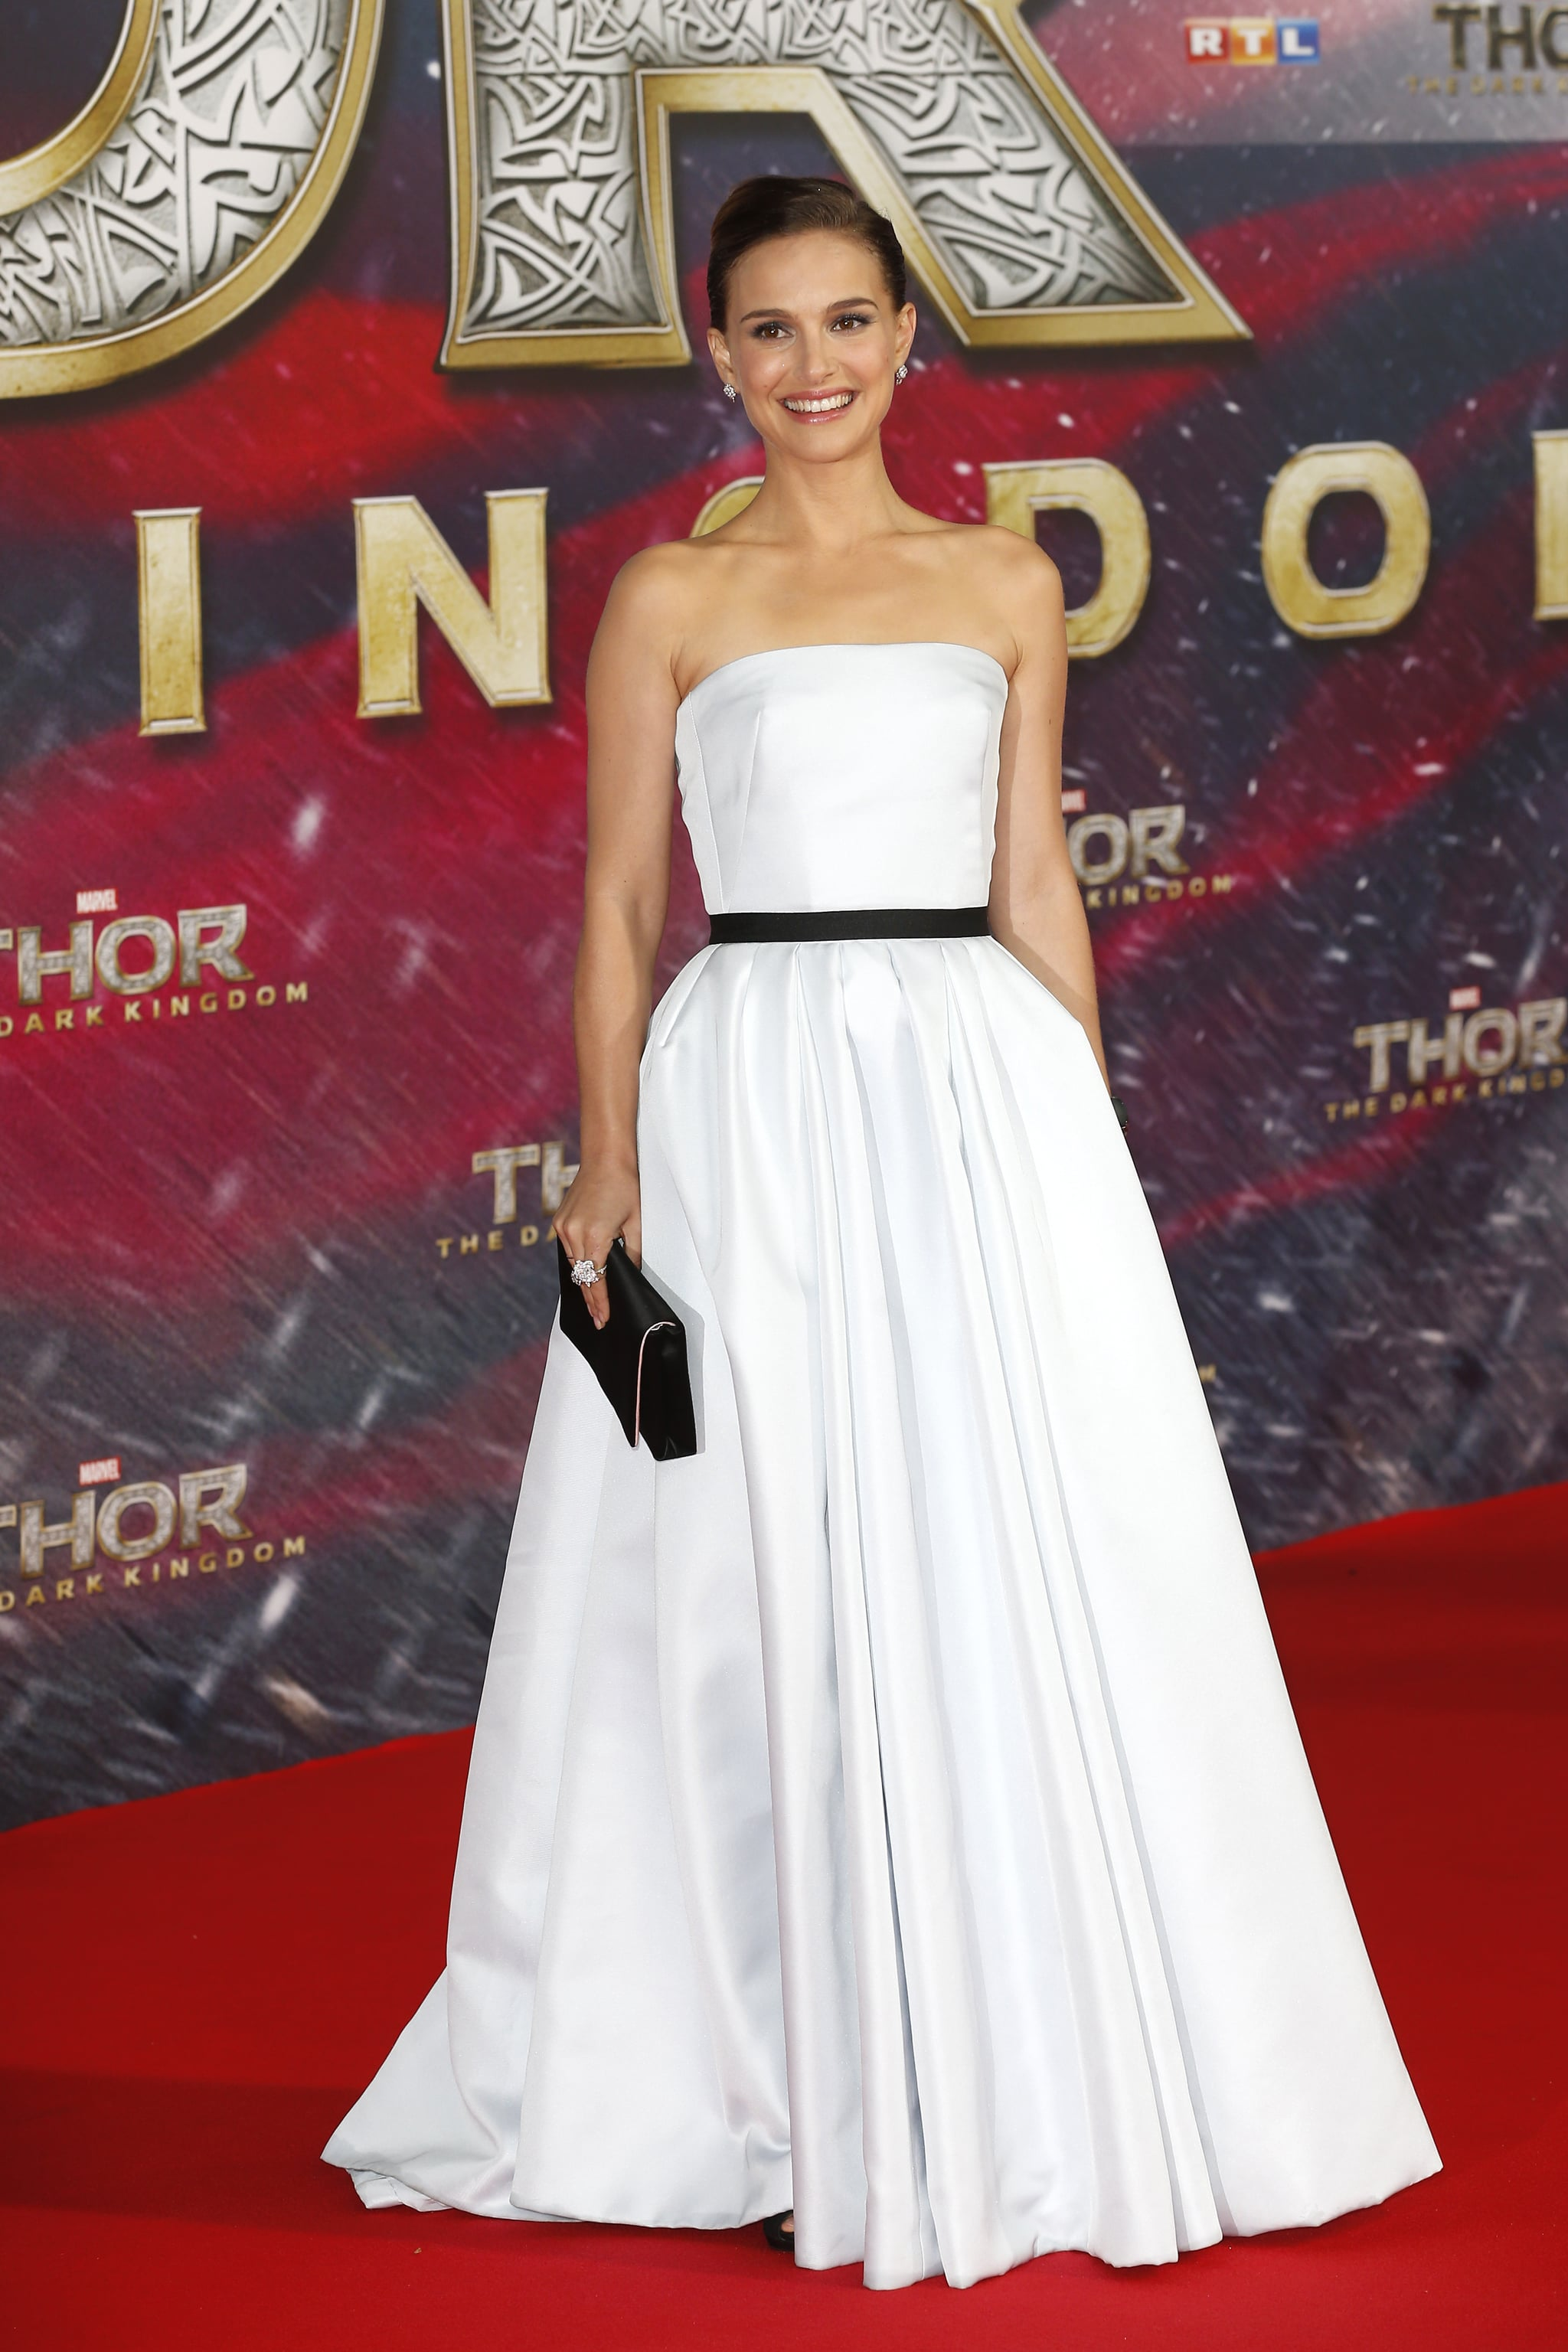 Natalie Portman wore a white floor-length dress to the German premiere of Thor: The Dark World.